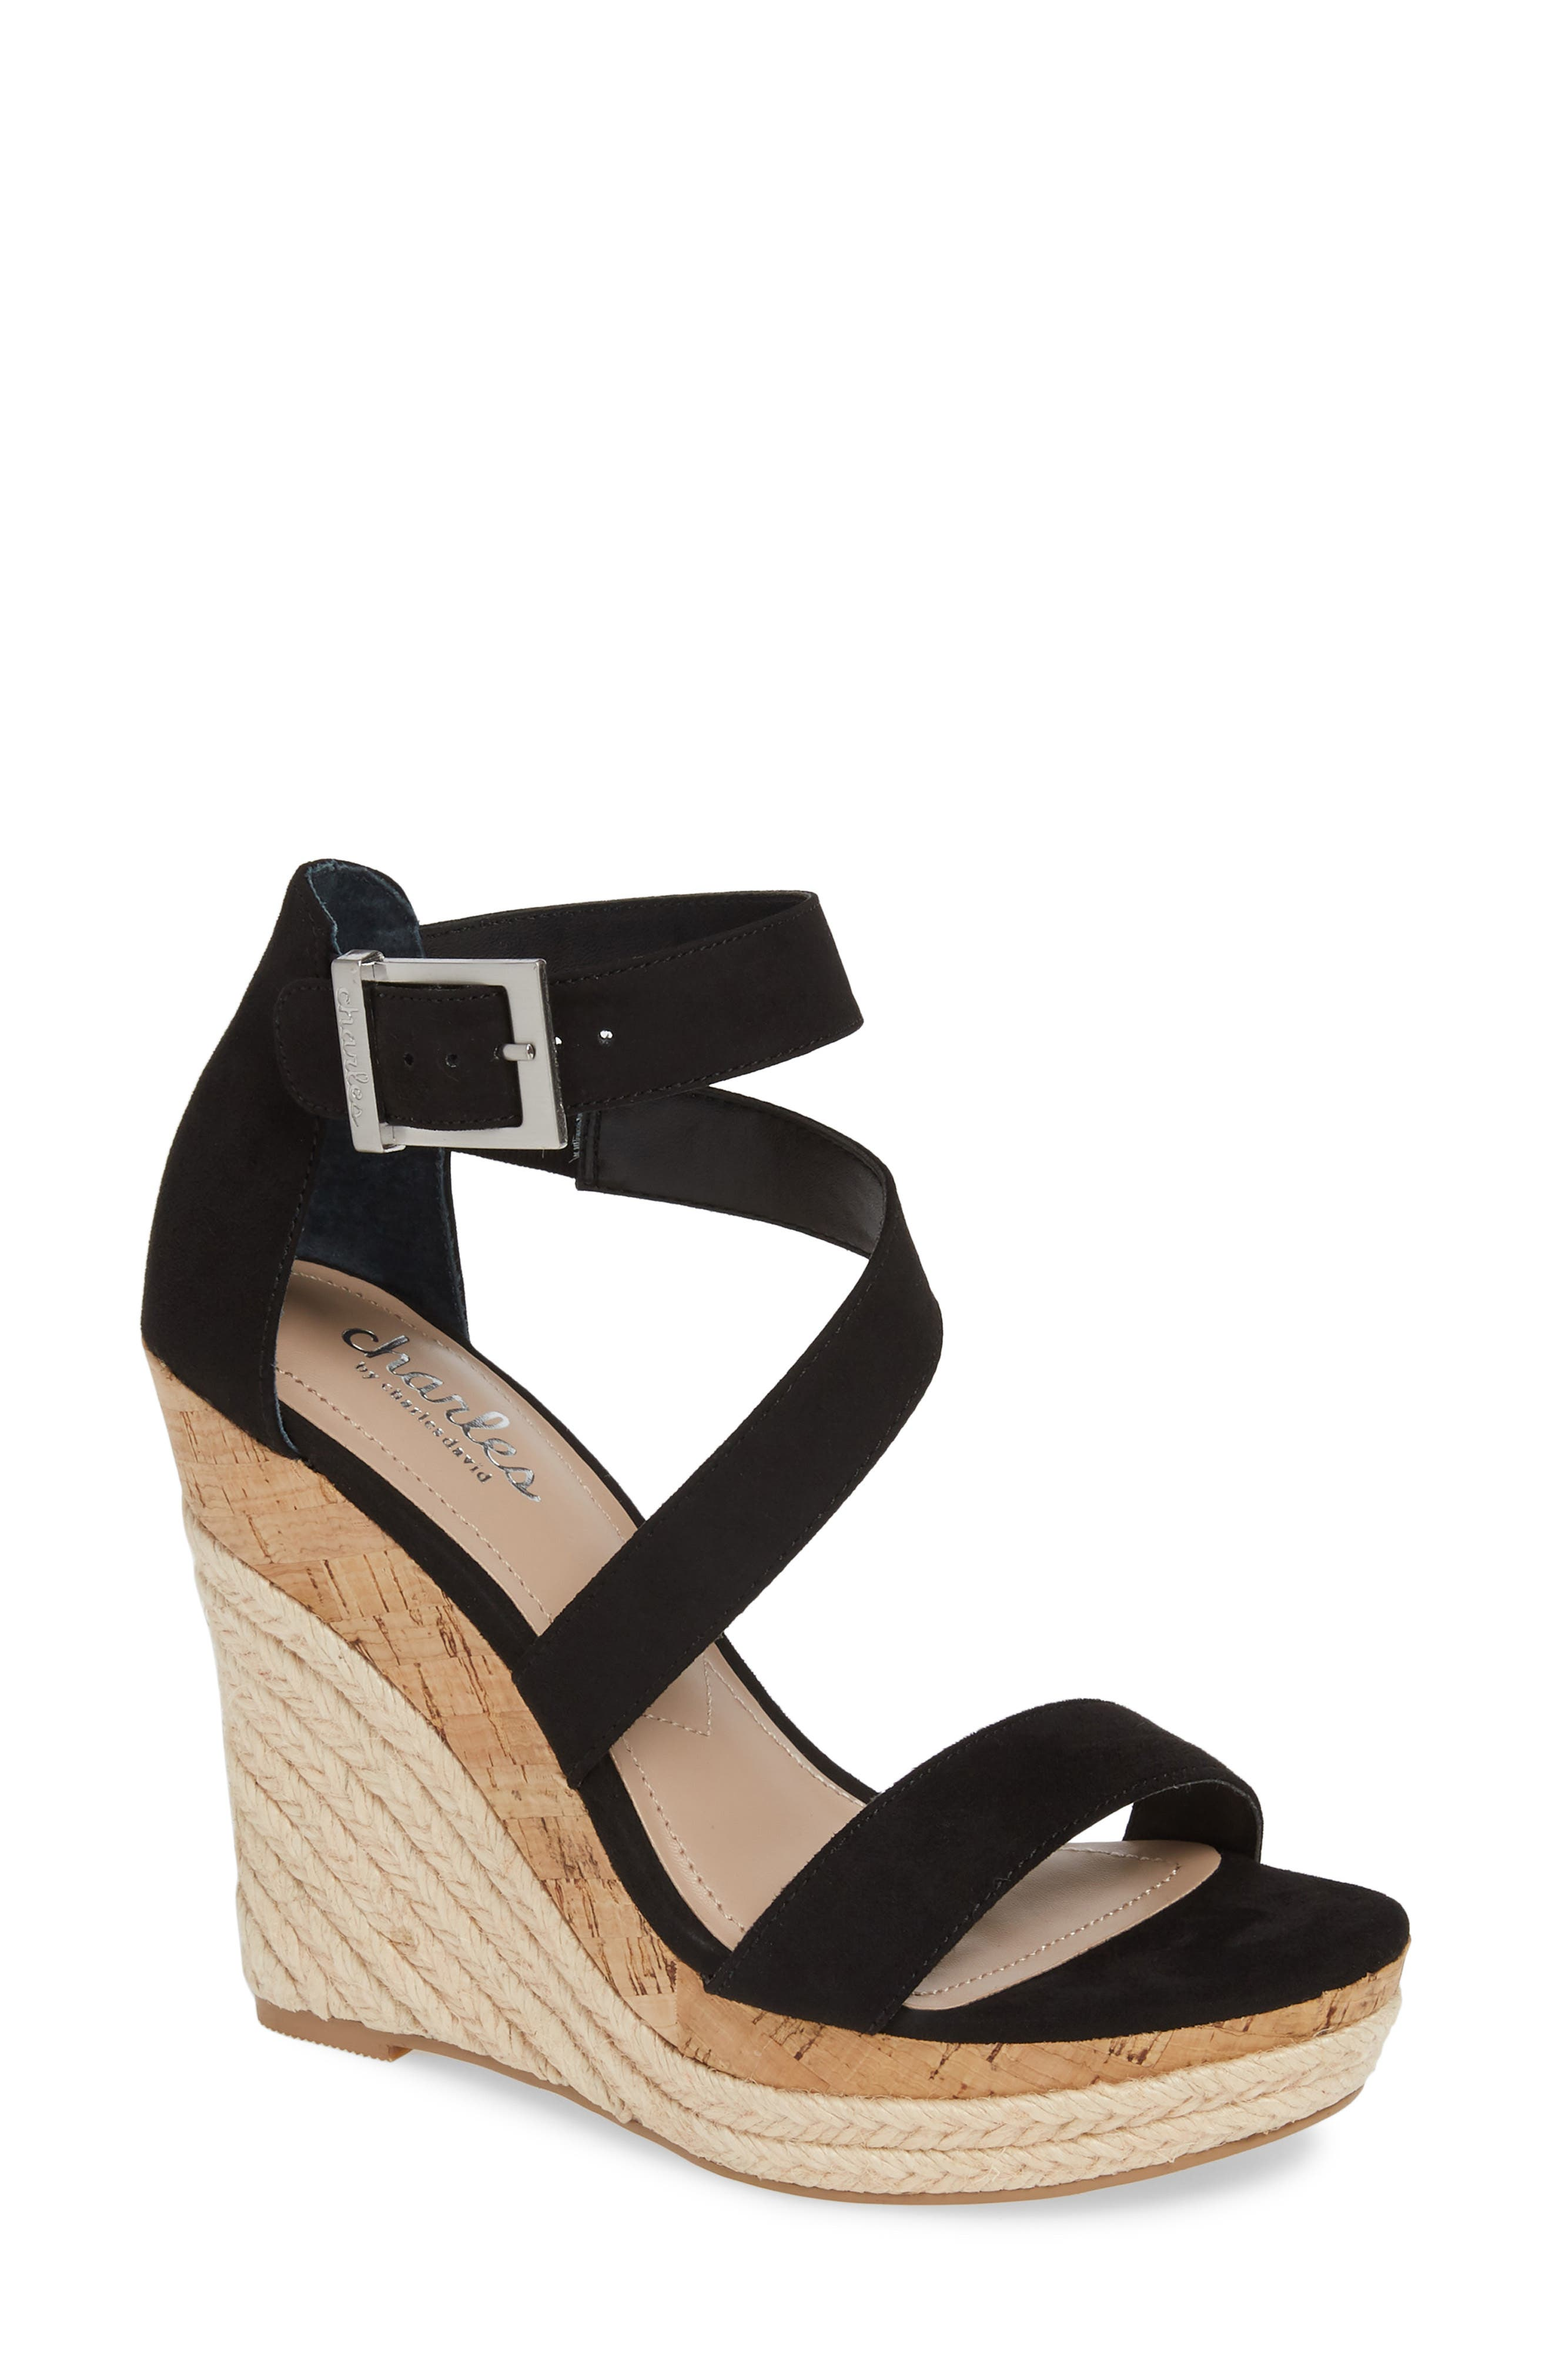 CHARLES BY CHARLES DAVID, Adrielle Asymmetrical Platform Wedge Sandal, Main thumbnail 1, color, BLACK FABRIC